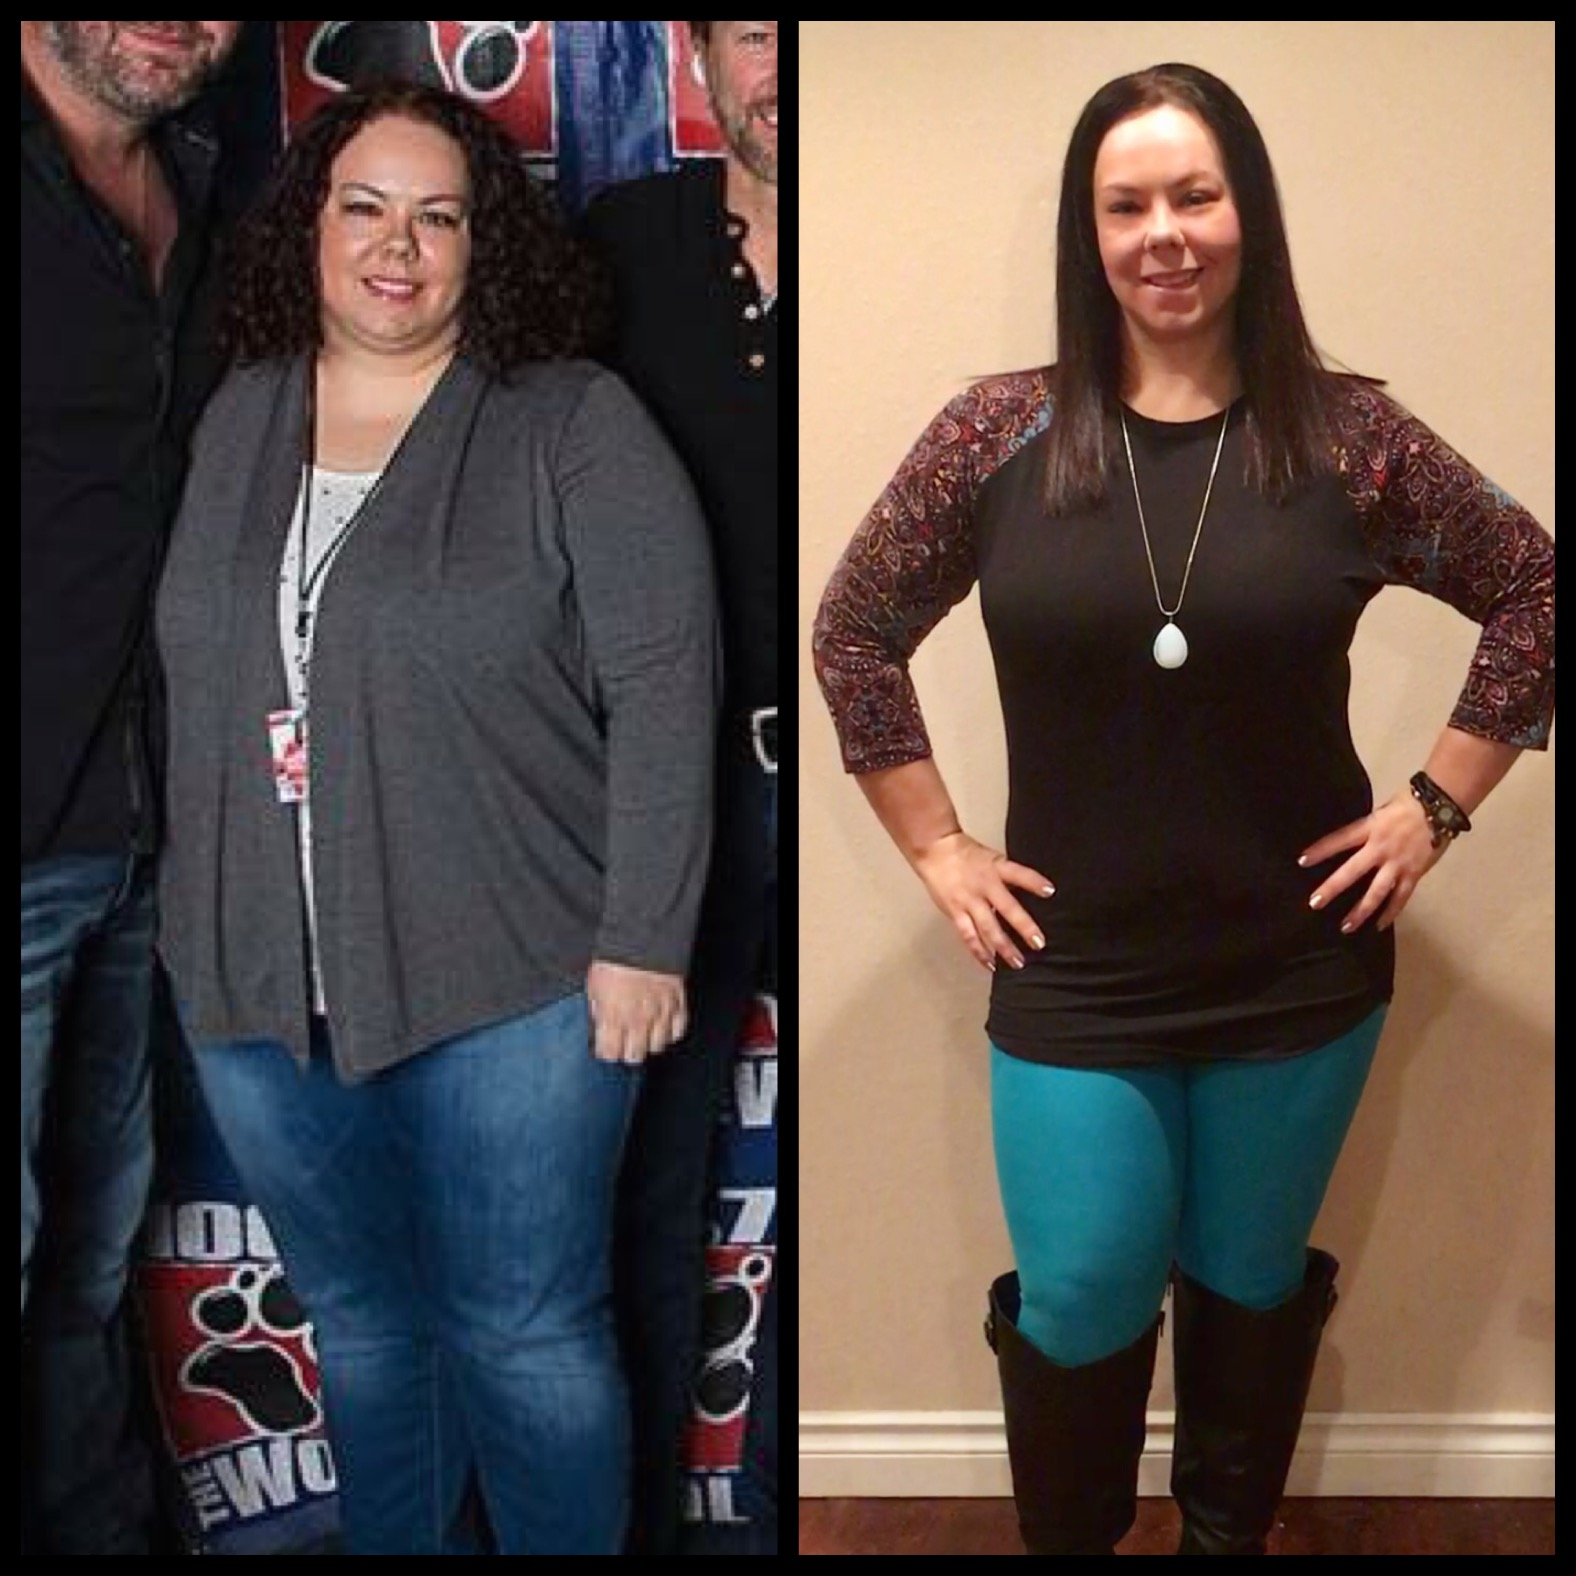 Carrie lost 86.2 pounds! See my before and after weight loss pictures, and read amazing weight loss success stories from real women and their best weight loss diet plans and programs. Motivation to lose weight with walking and inspiration from before and after weightloss pics and photos.